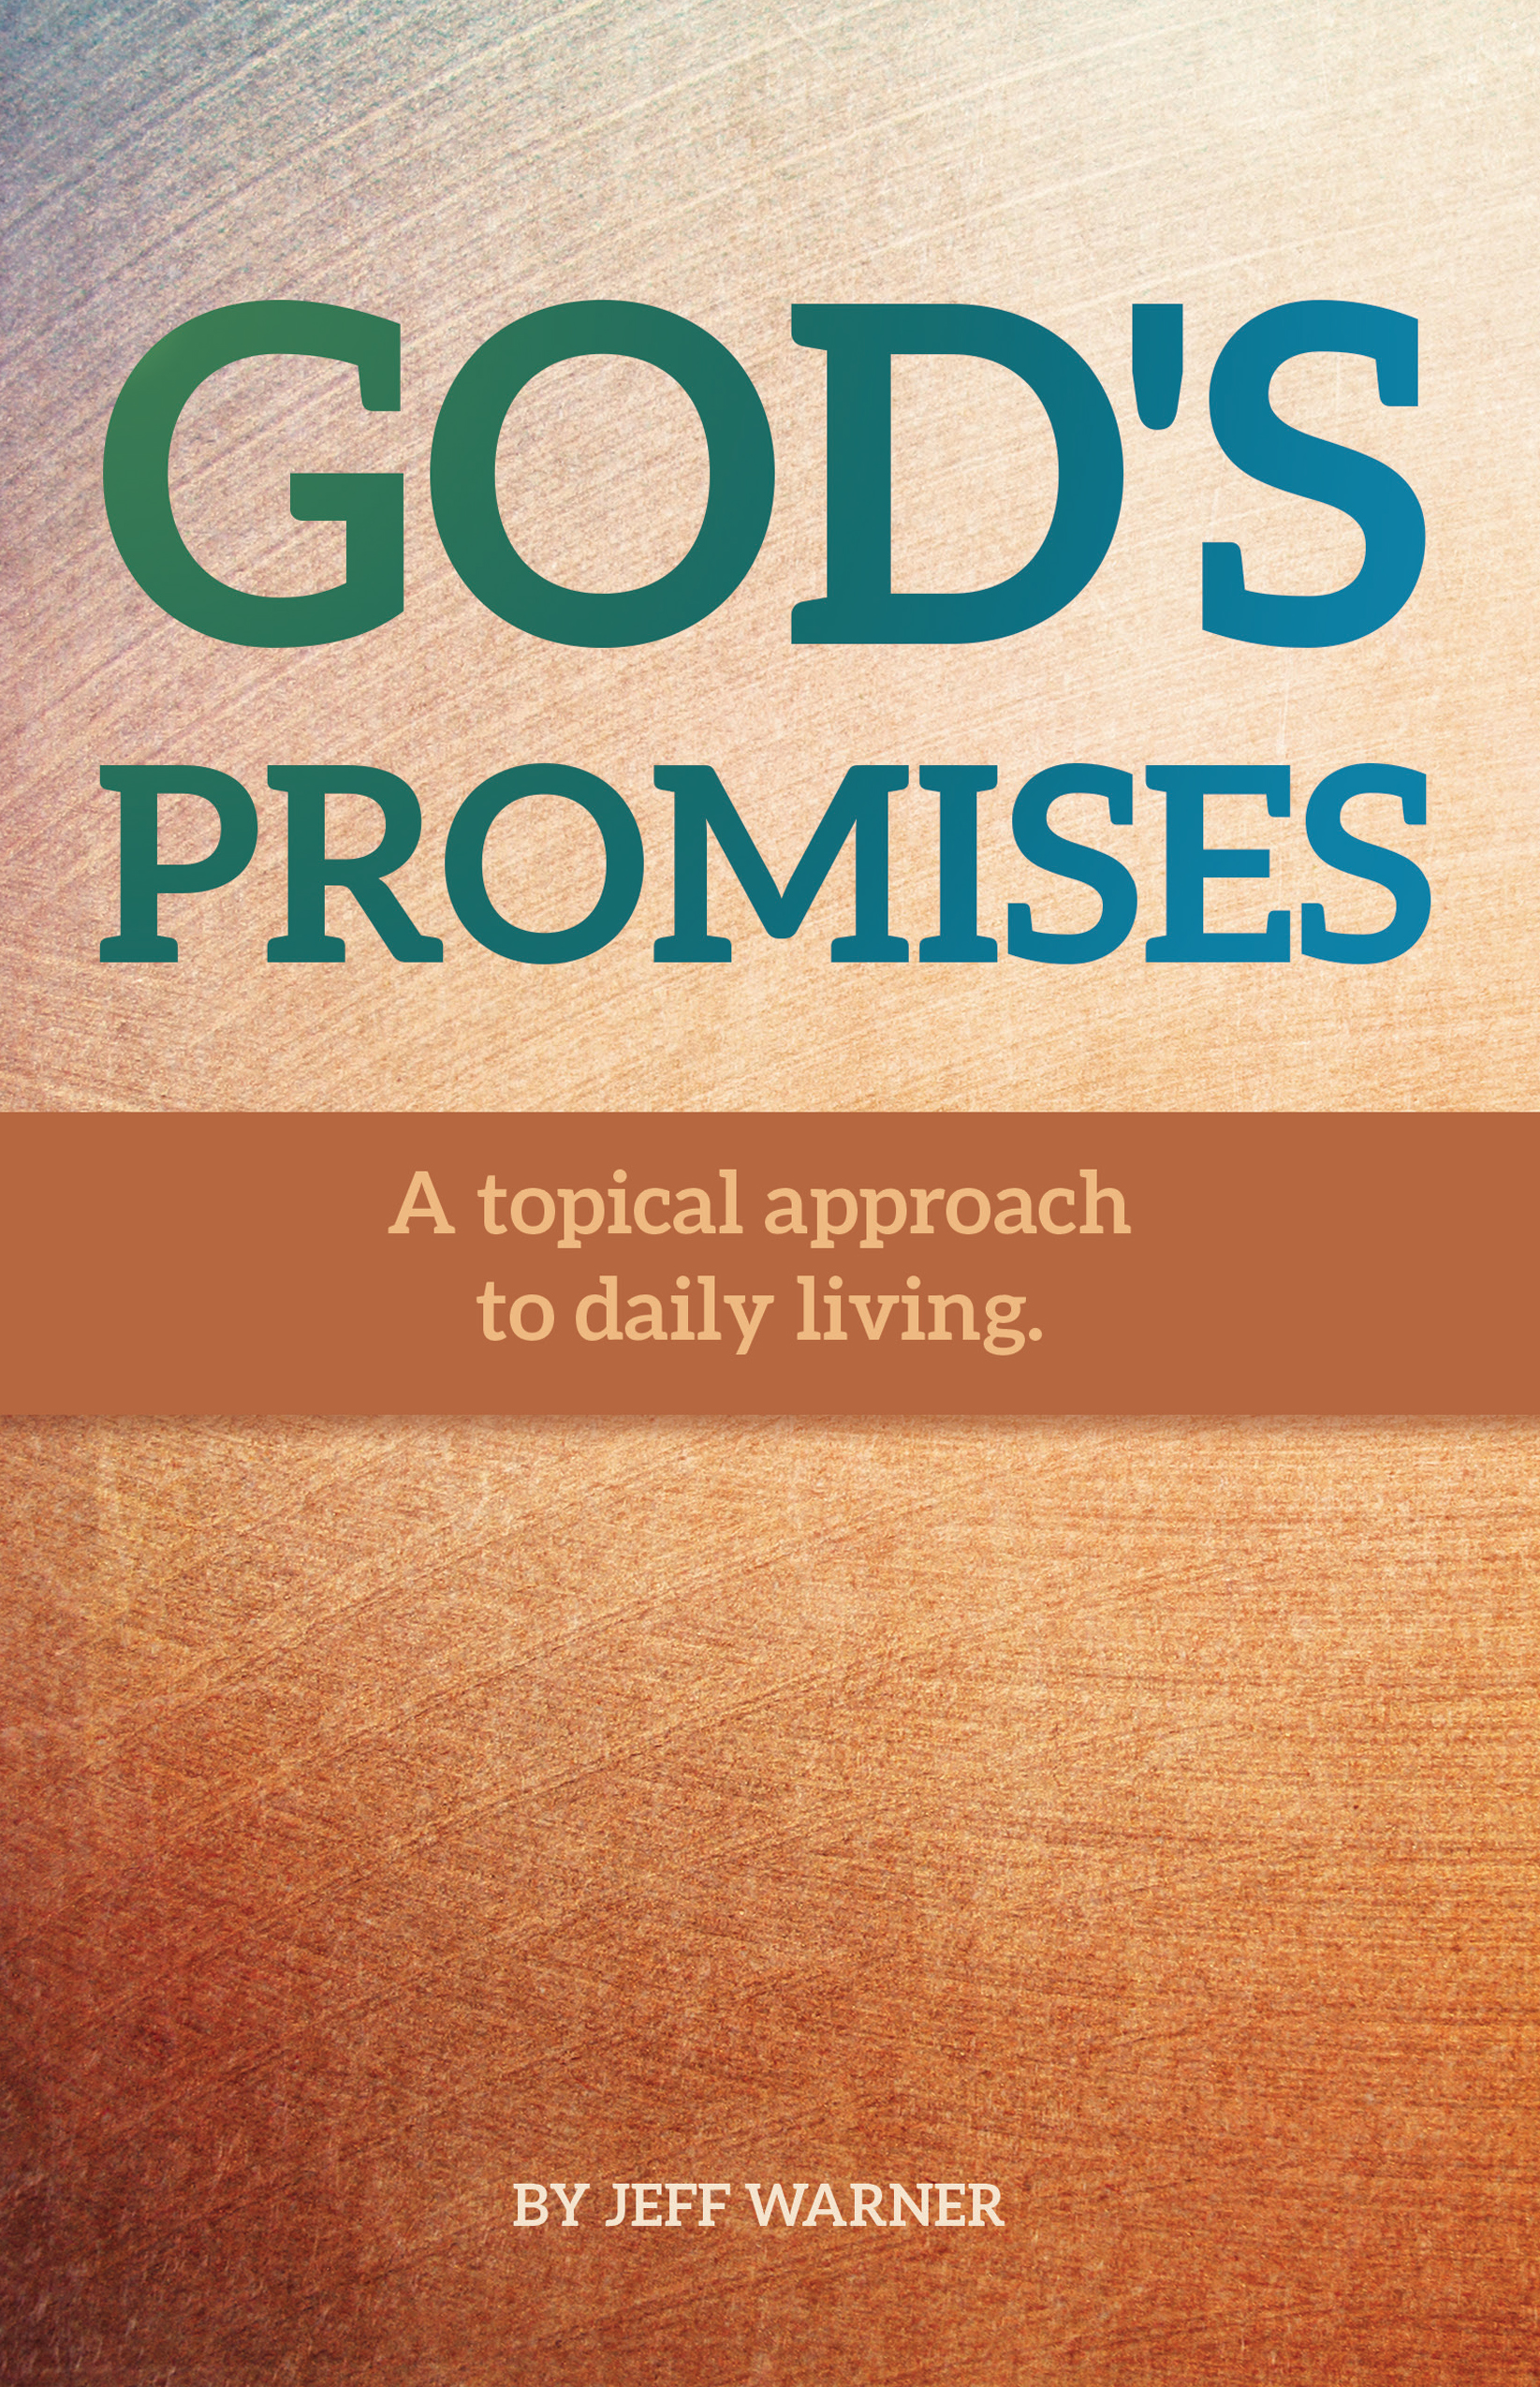 Promises - Cover - 9781498403313_cov-Front Cover.jpg